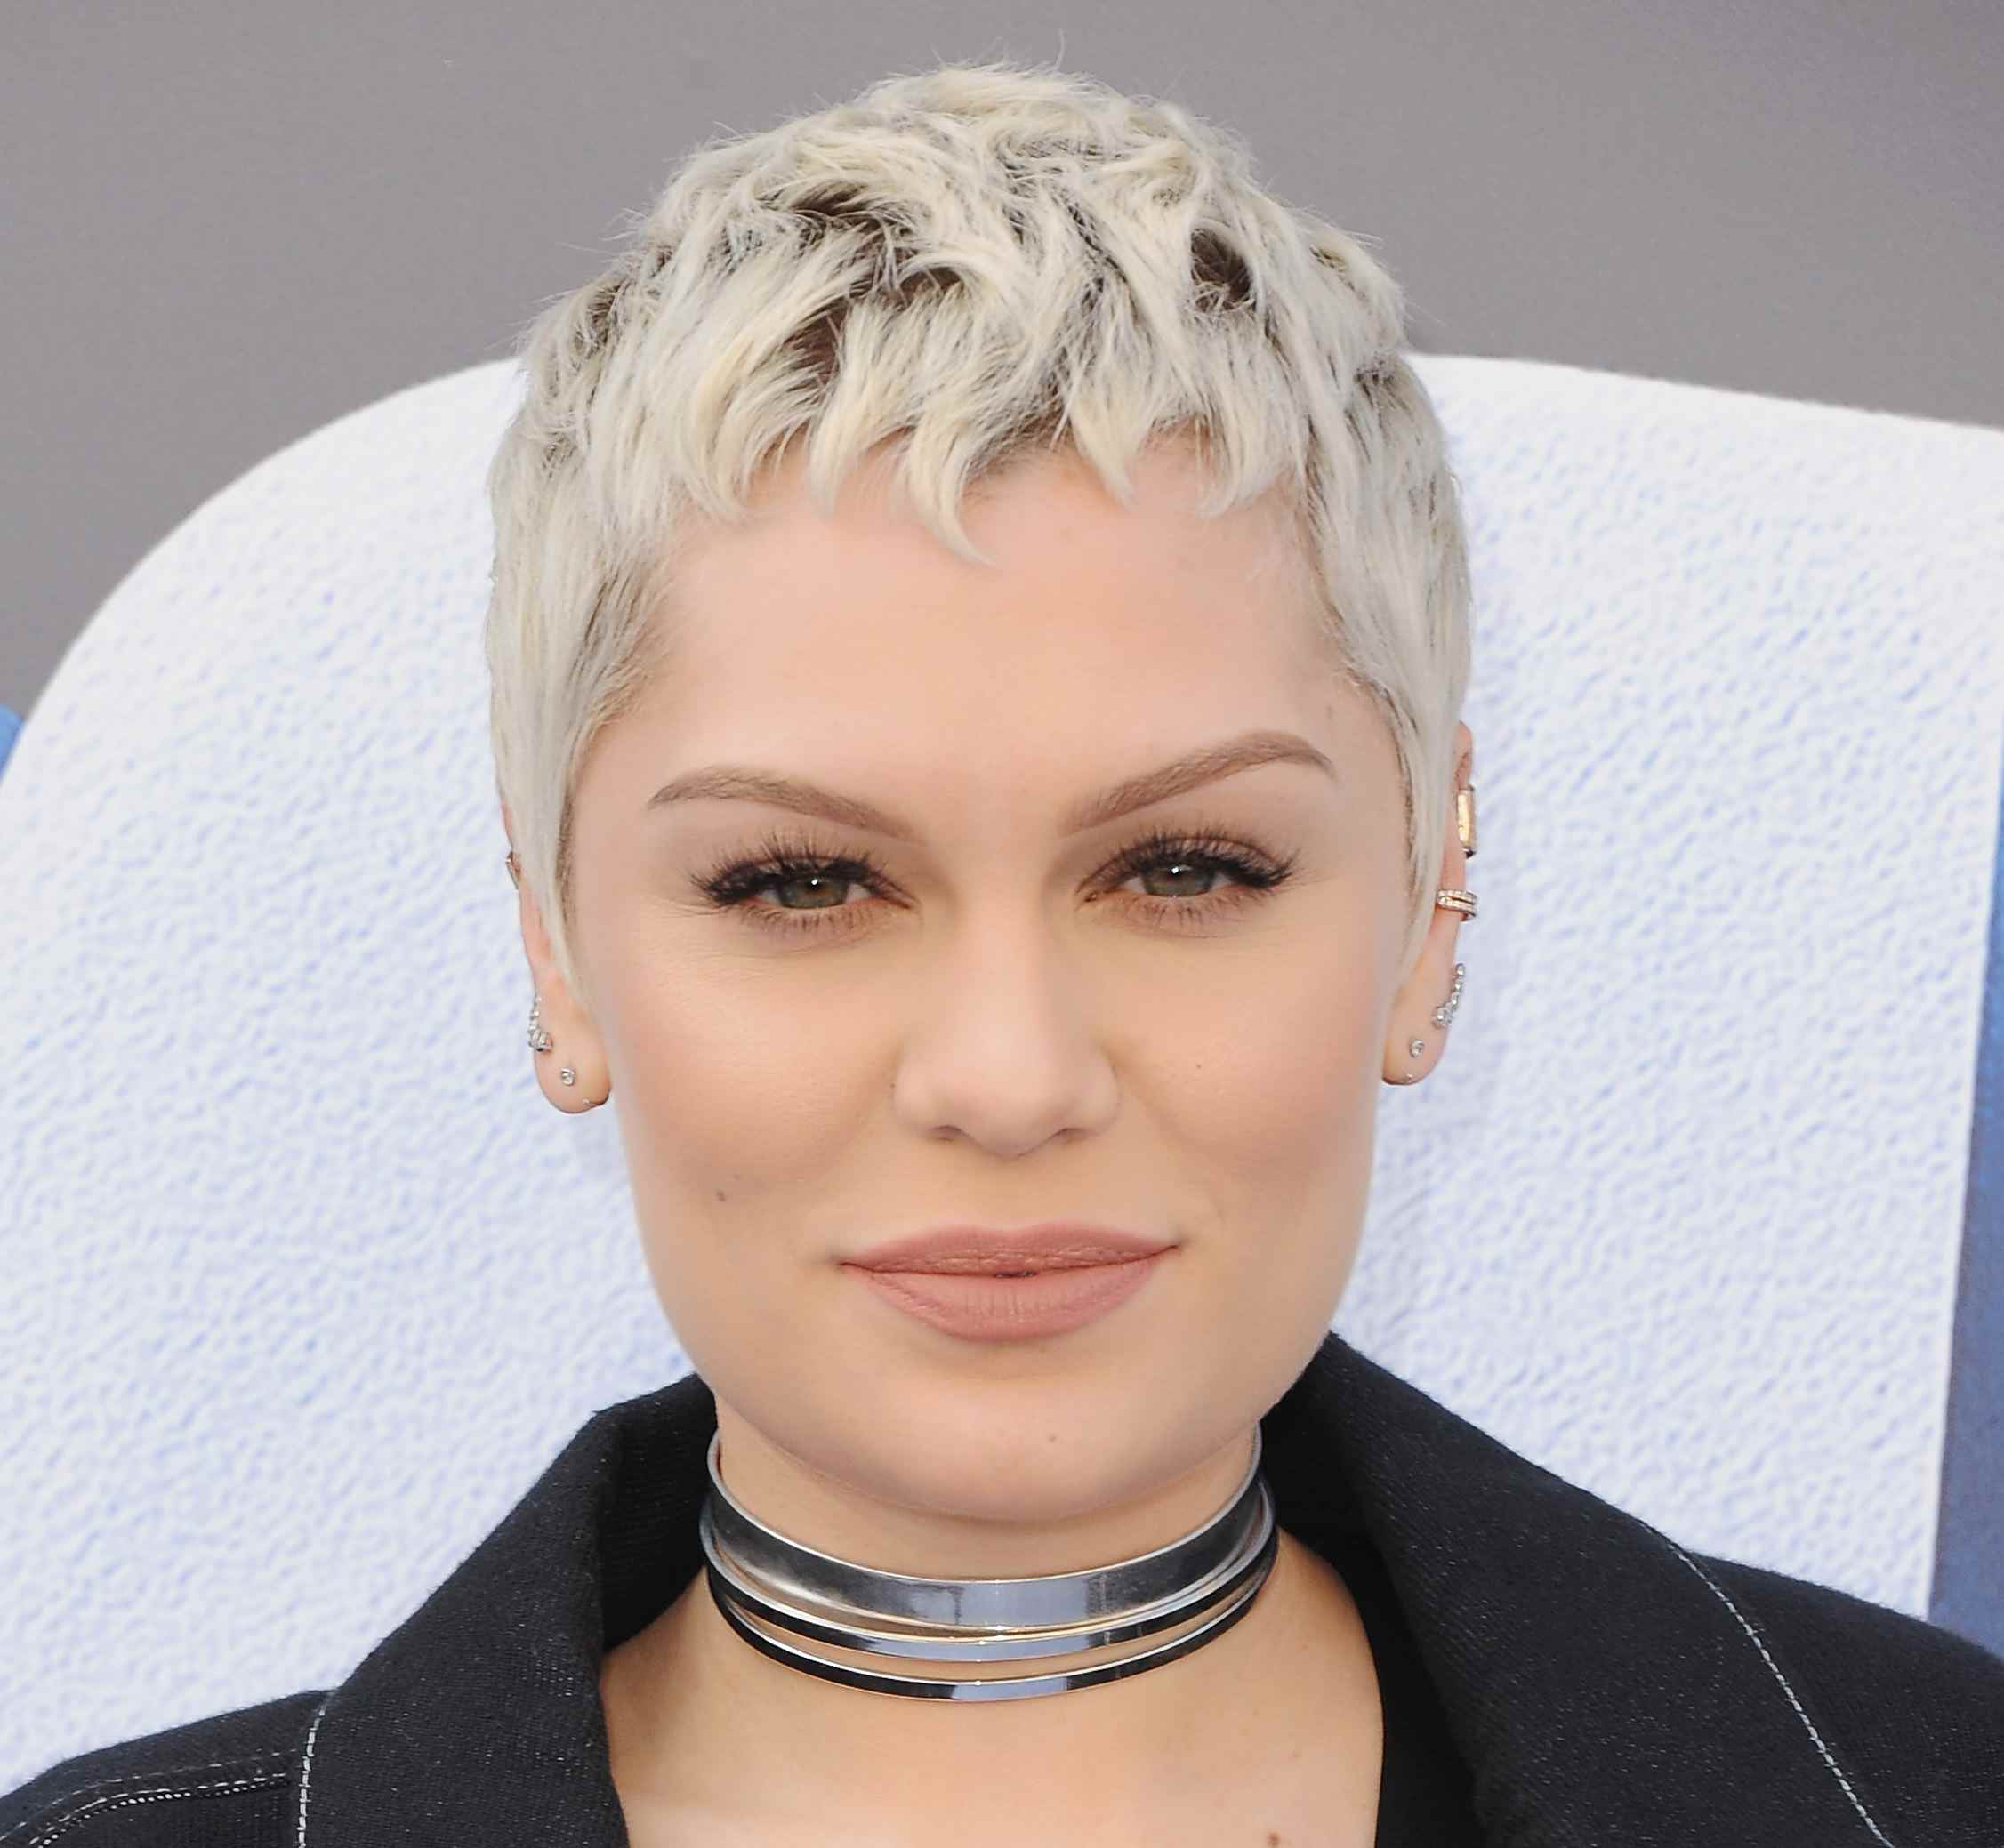 20 Very Sweet Yet Very Sexy Short Hairstyles